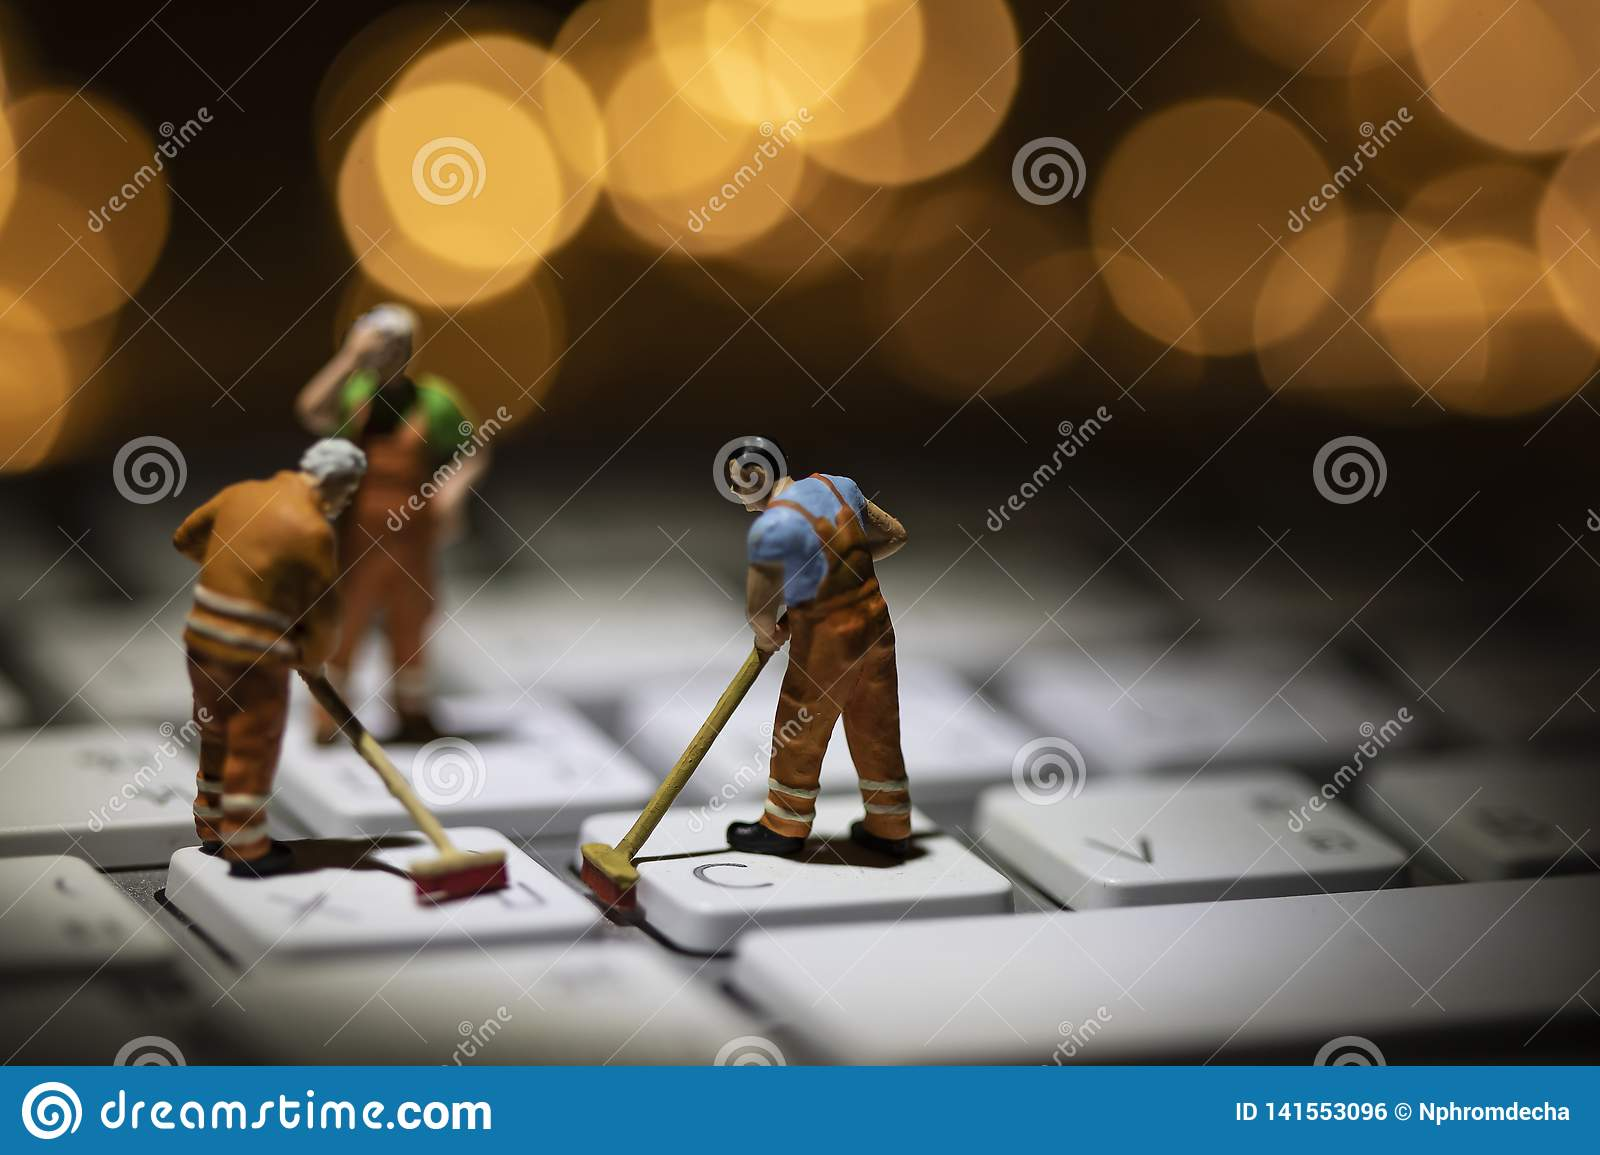 Miniature people cleaning white keyboard computer